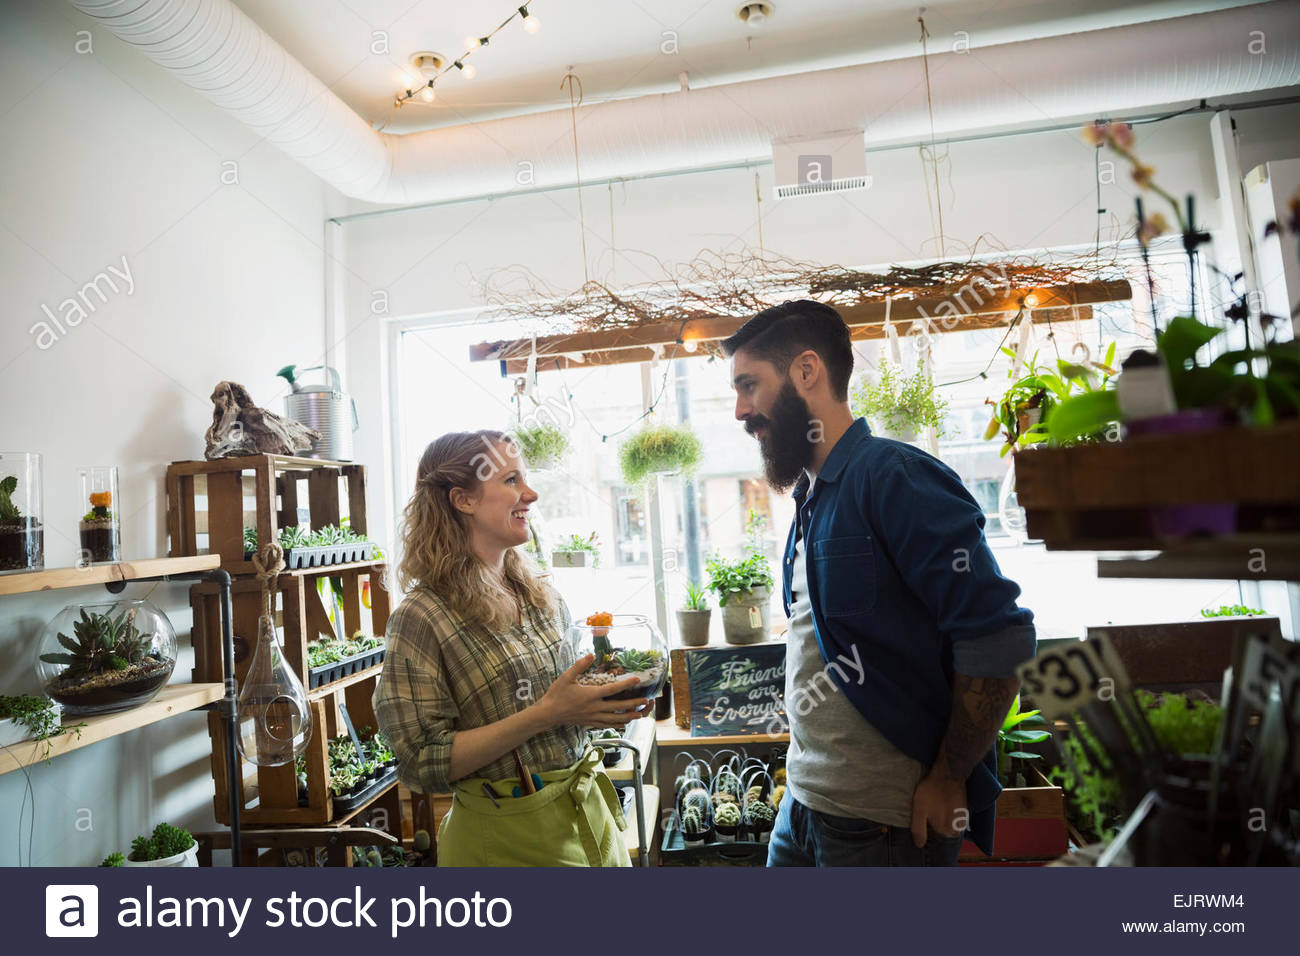 Terrarium Shop Owner Helping Customer With Plants Stock Photo